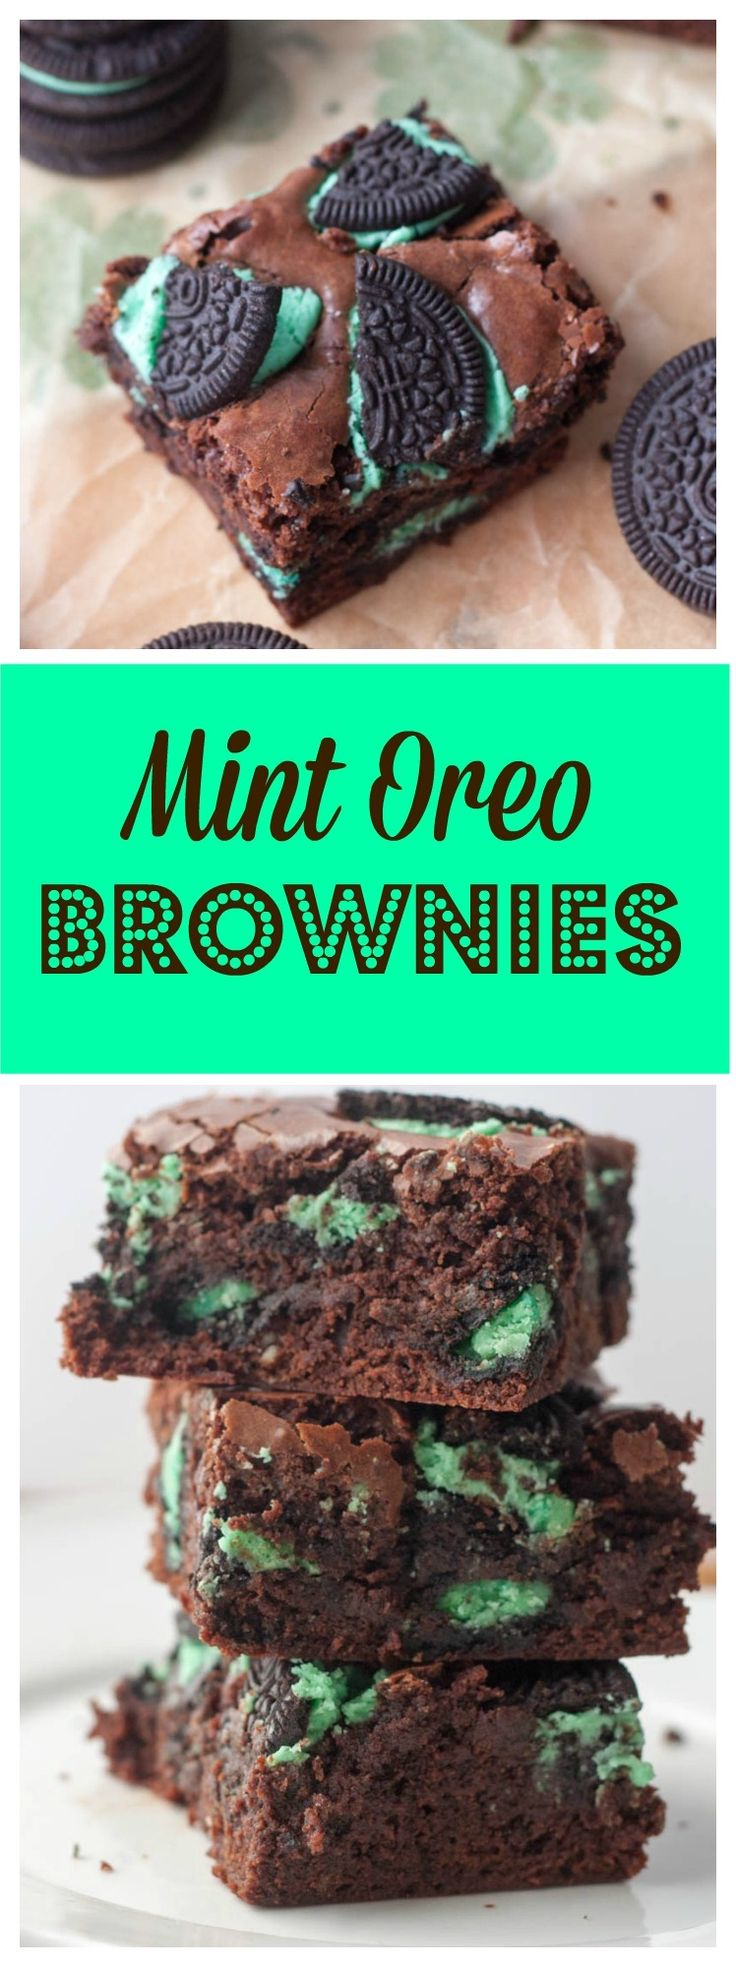 Mint Oreo Brownies- classic fudgy brownies loaded with Mint Oreo cookies to make them absolutely chocolate heaven! Pin now for later when you have a chocolate craving! http://www.bostongirlbakes.com/2015/03/21/mint-oreo-brownies/